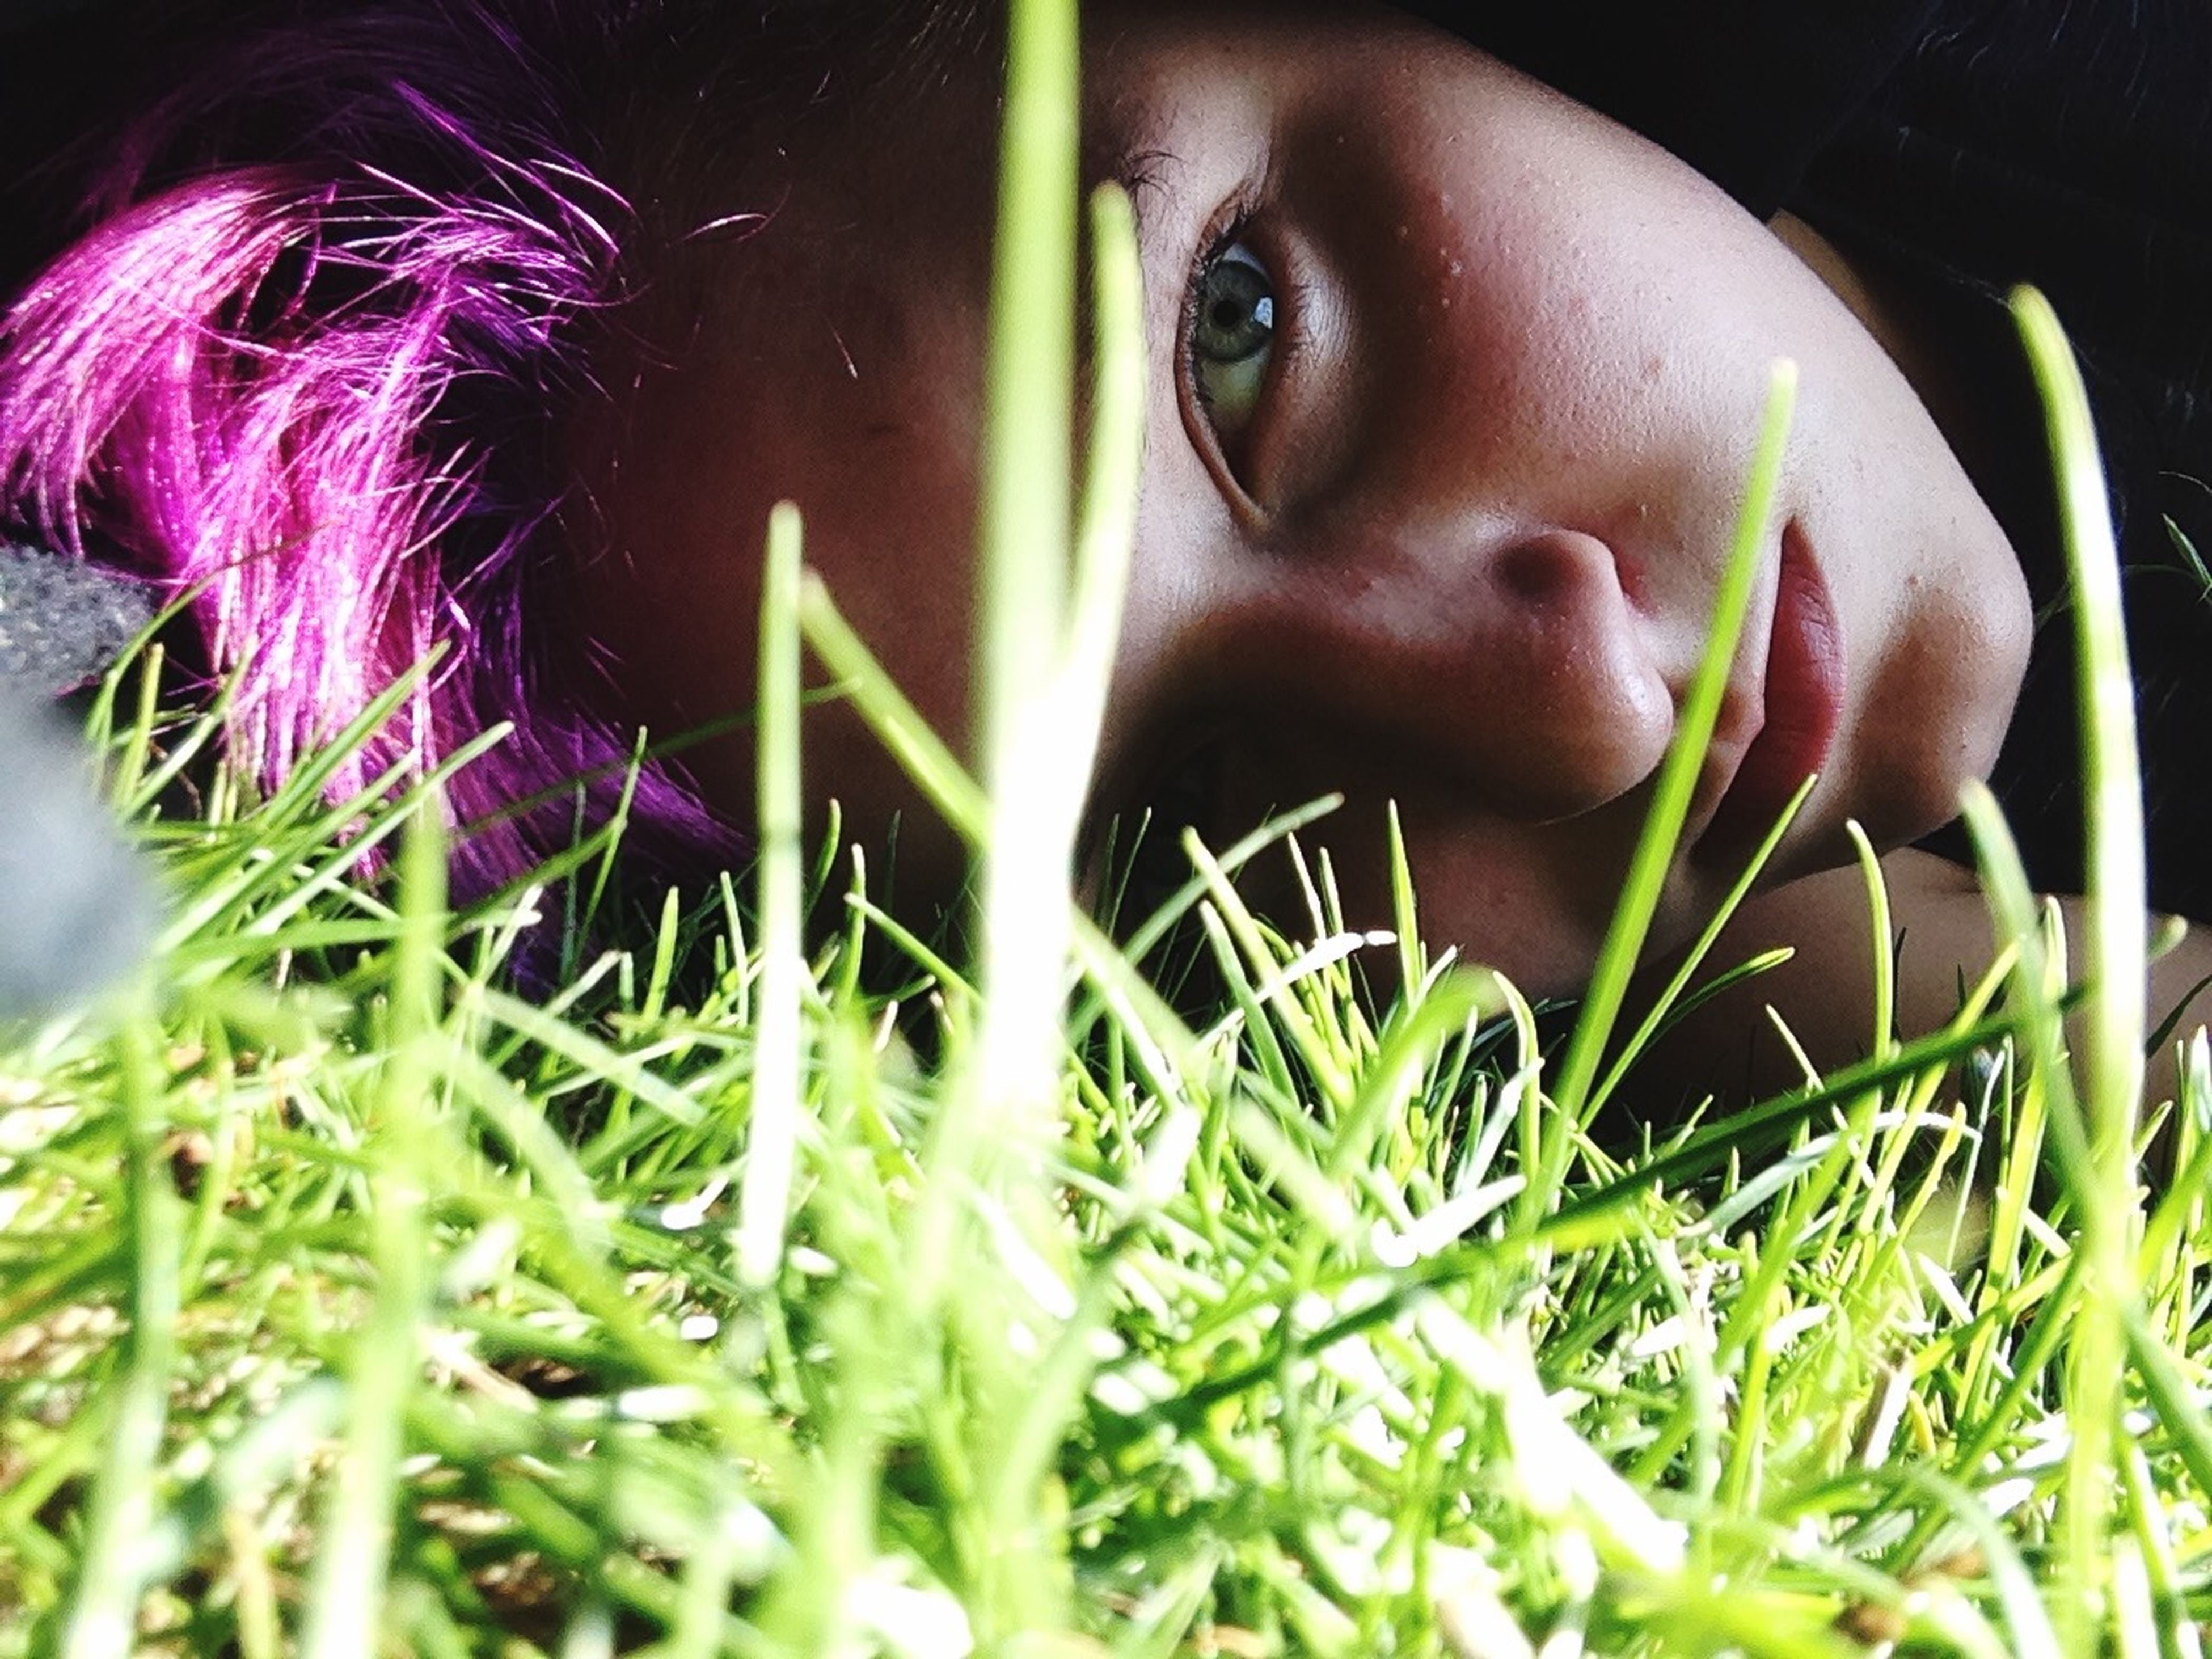 grass, person, lifestyles, young adult, close-up, plant, portrait, focus on foreground, leisure activity, young women, growth, selective focus, looking at camera, field, green color, headshot, front view, flower